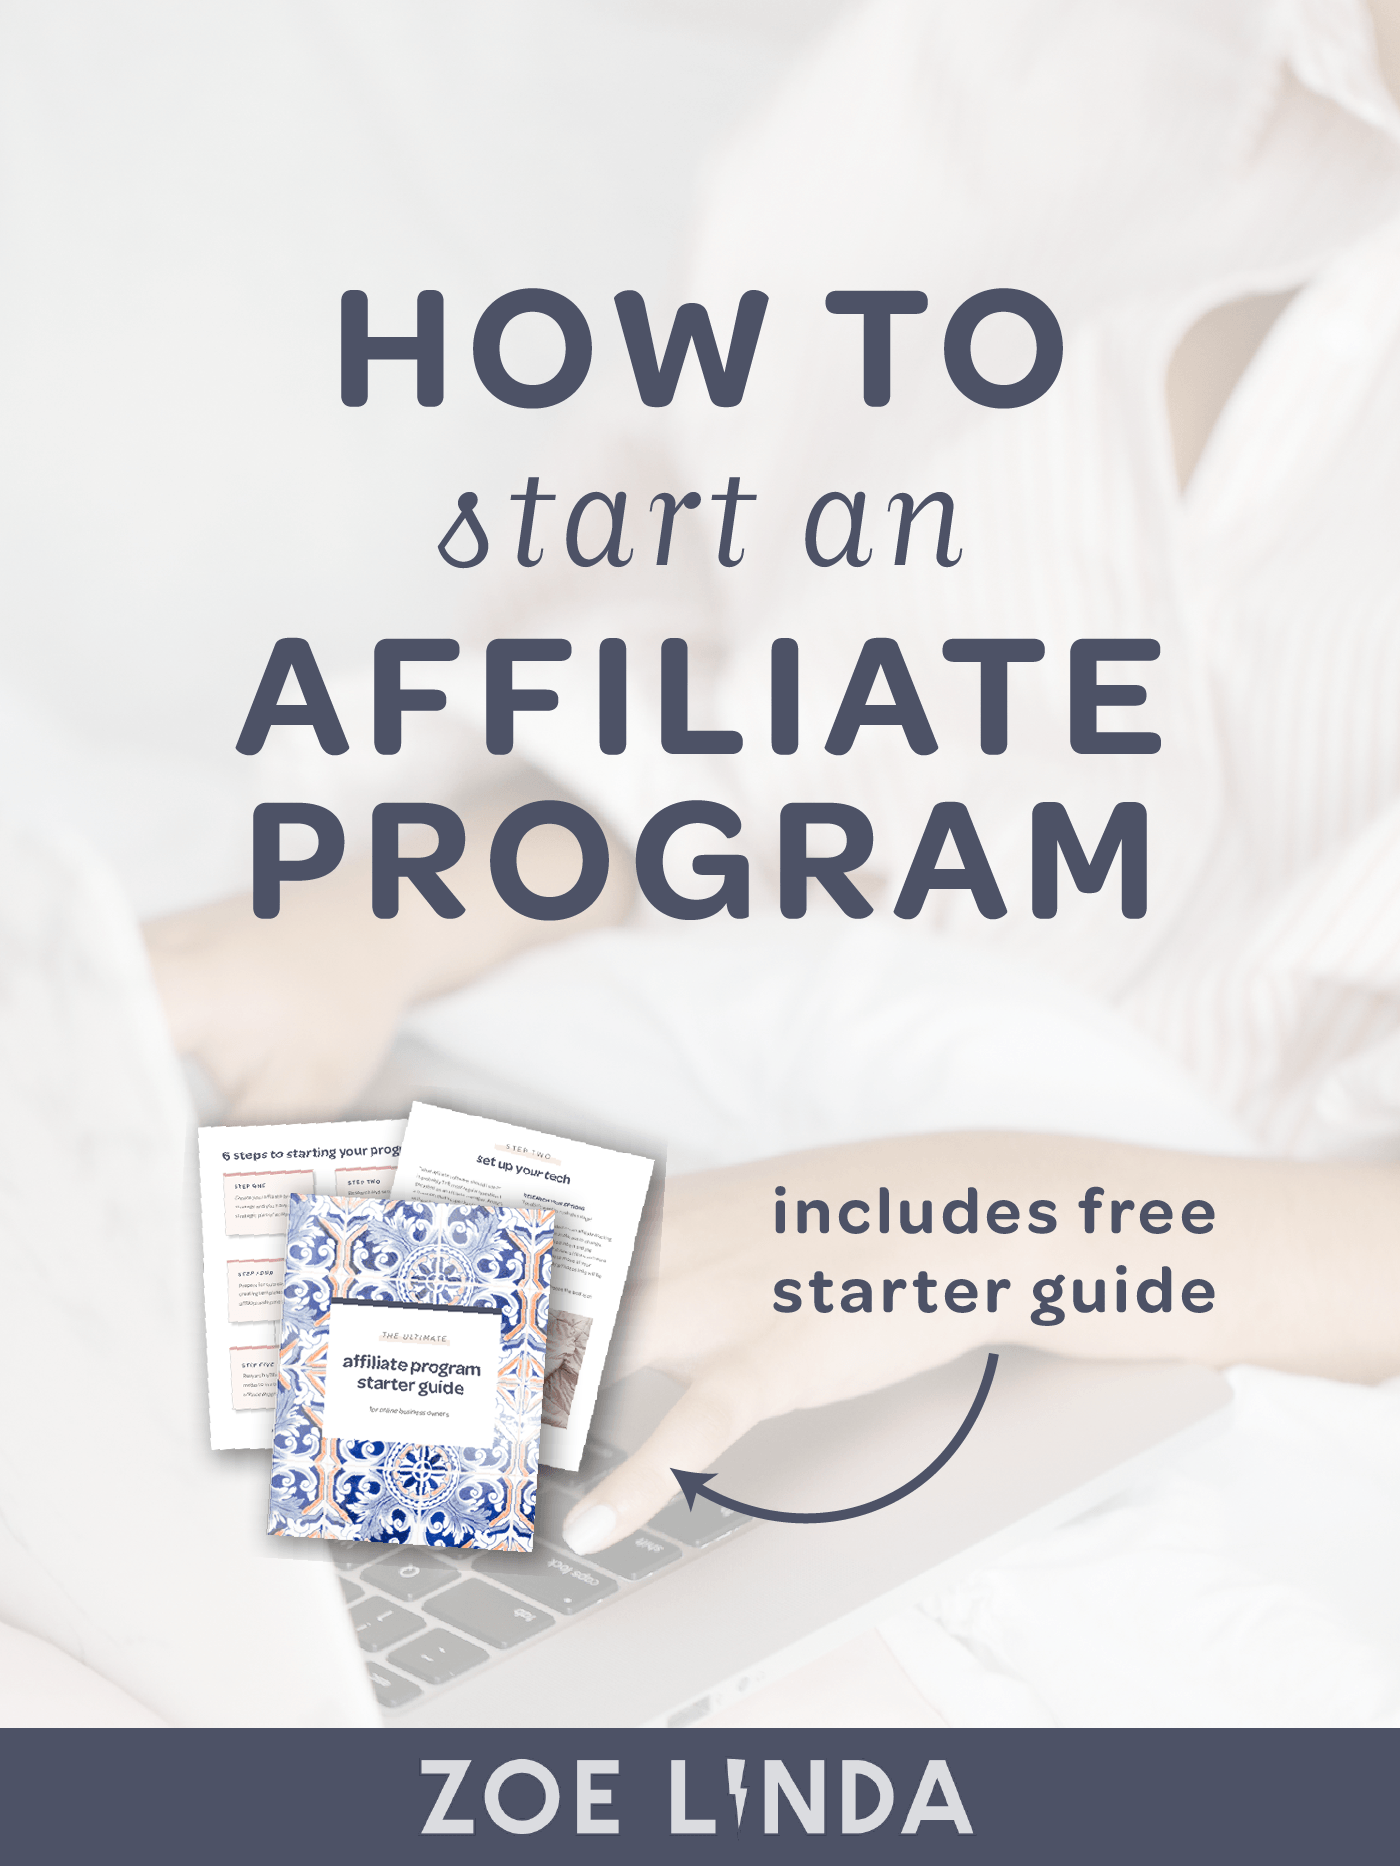 How To Start An Affiliate Program To Increase Your Product Sales | Setting up an affiliate program for your online business is a great way to reach new audiences, make connections, and increase your income. But how do you go about creating one? Click through to read my ultimate guide to starting an affiliate program for your business.